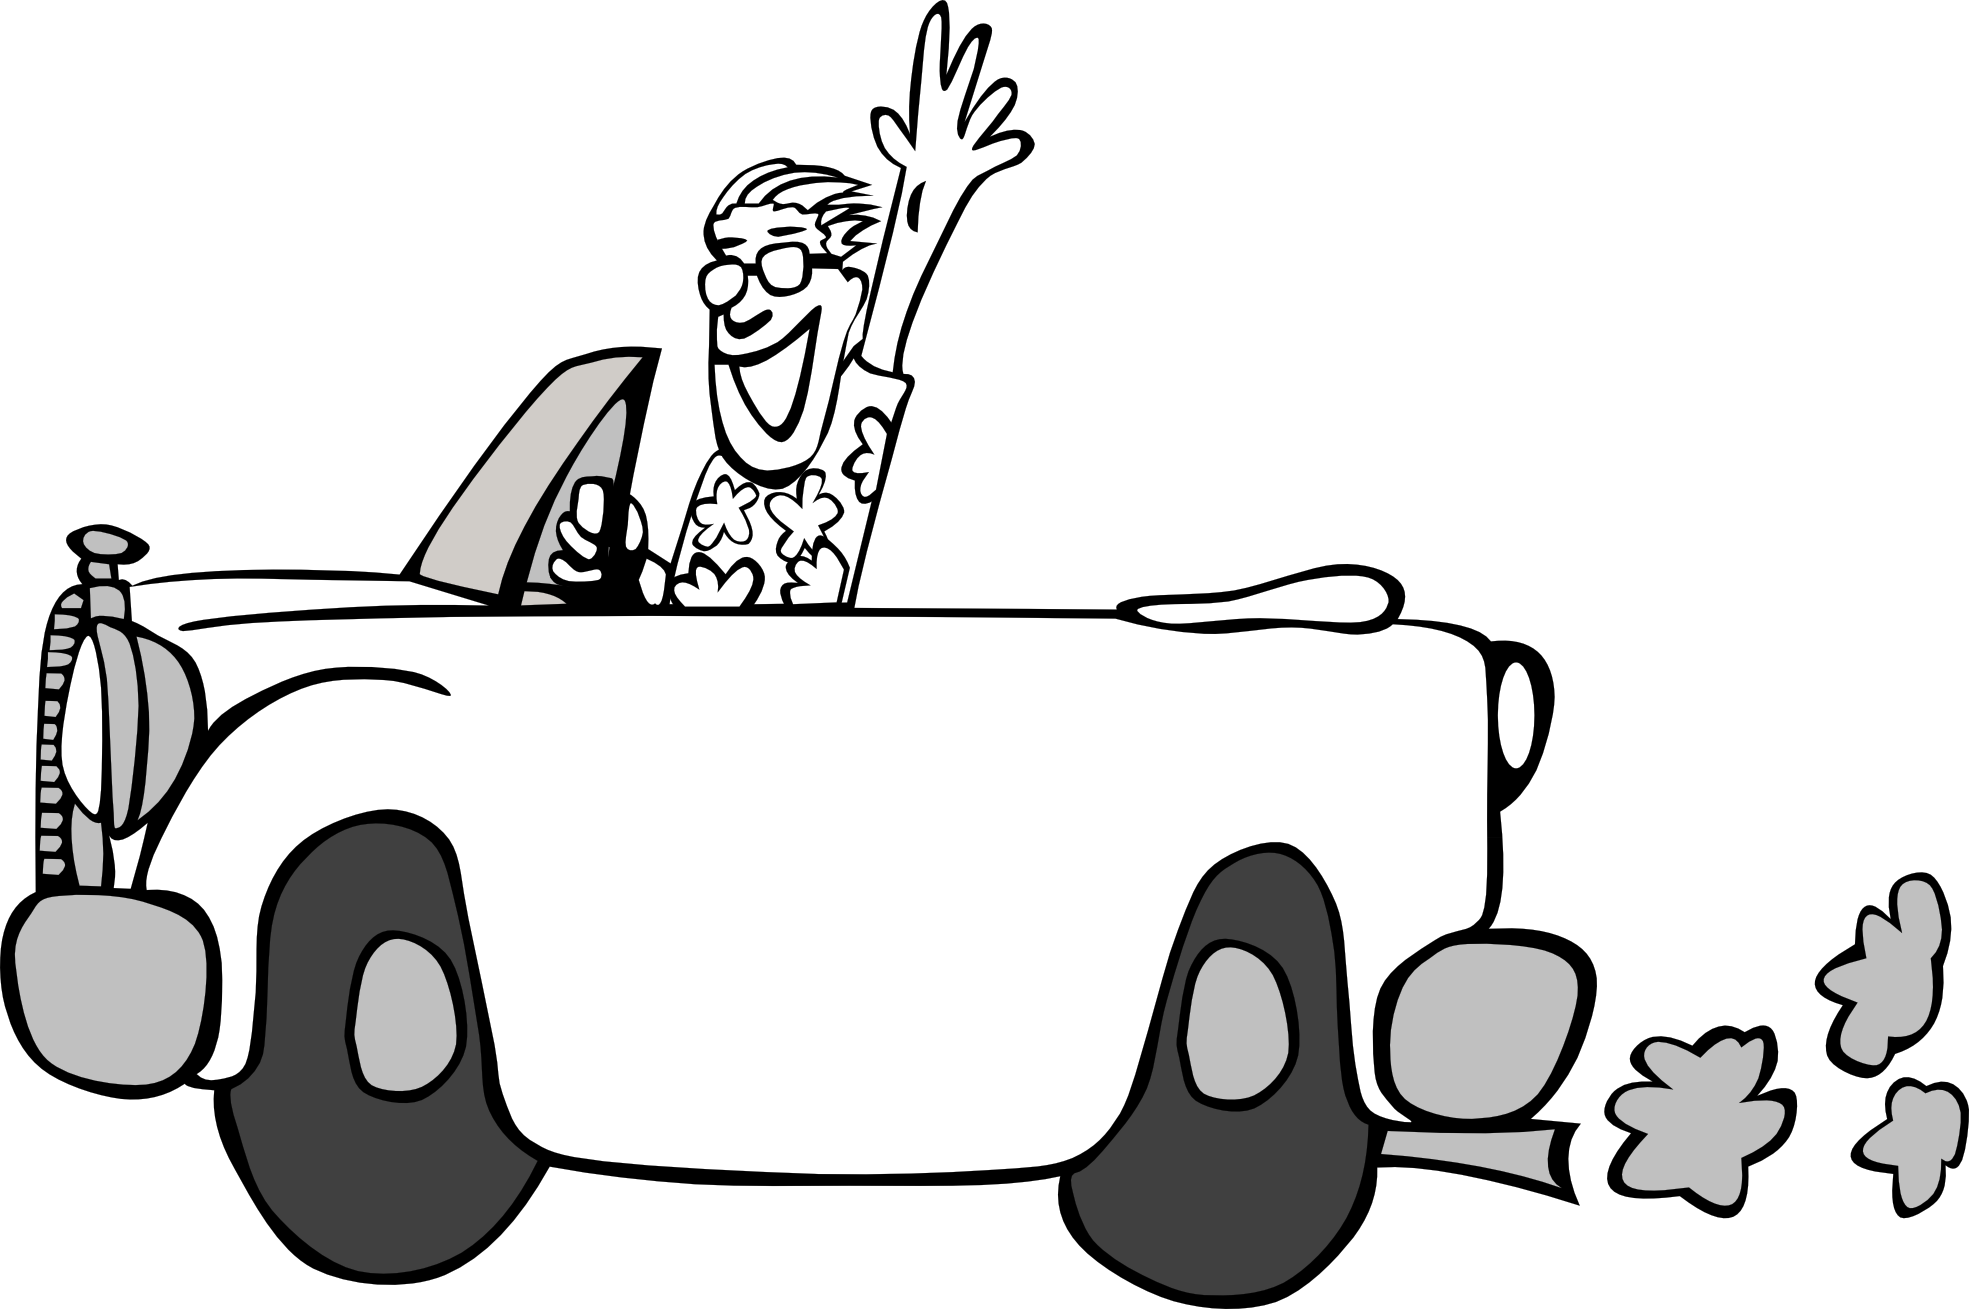 royalty free download Driving car . Texting clipart black and white